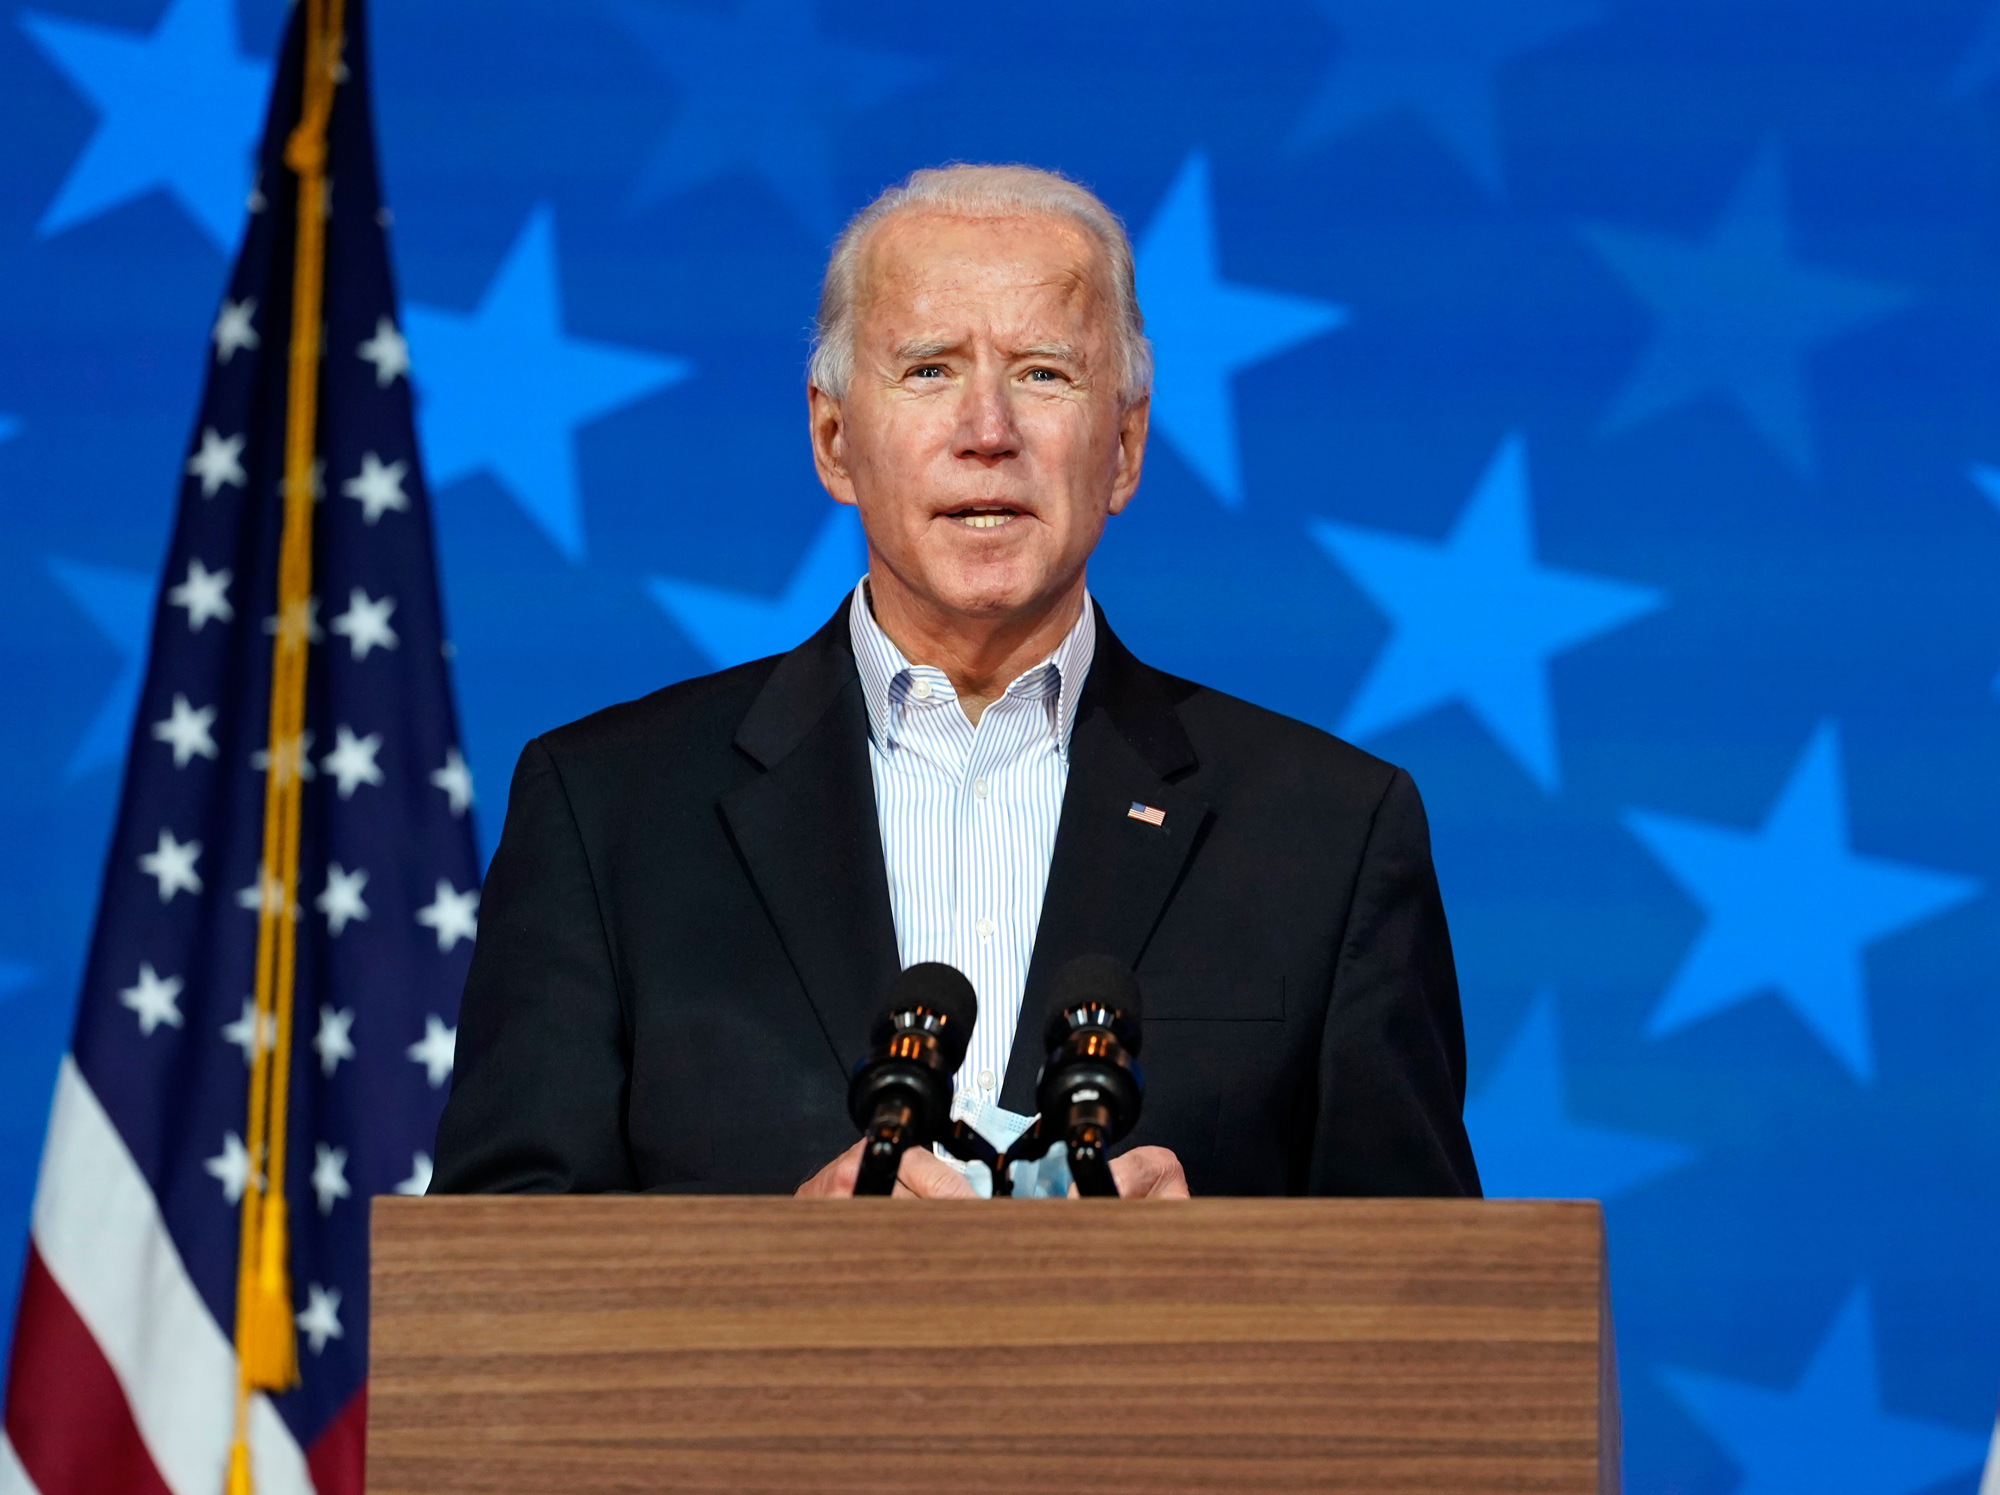 Democratic presidential candidate Joe Biden speaks on November 5 in Wilmington, Delaware.